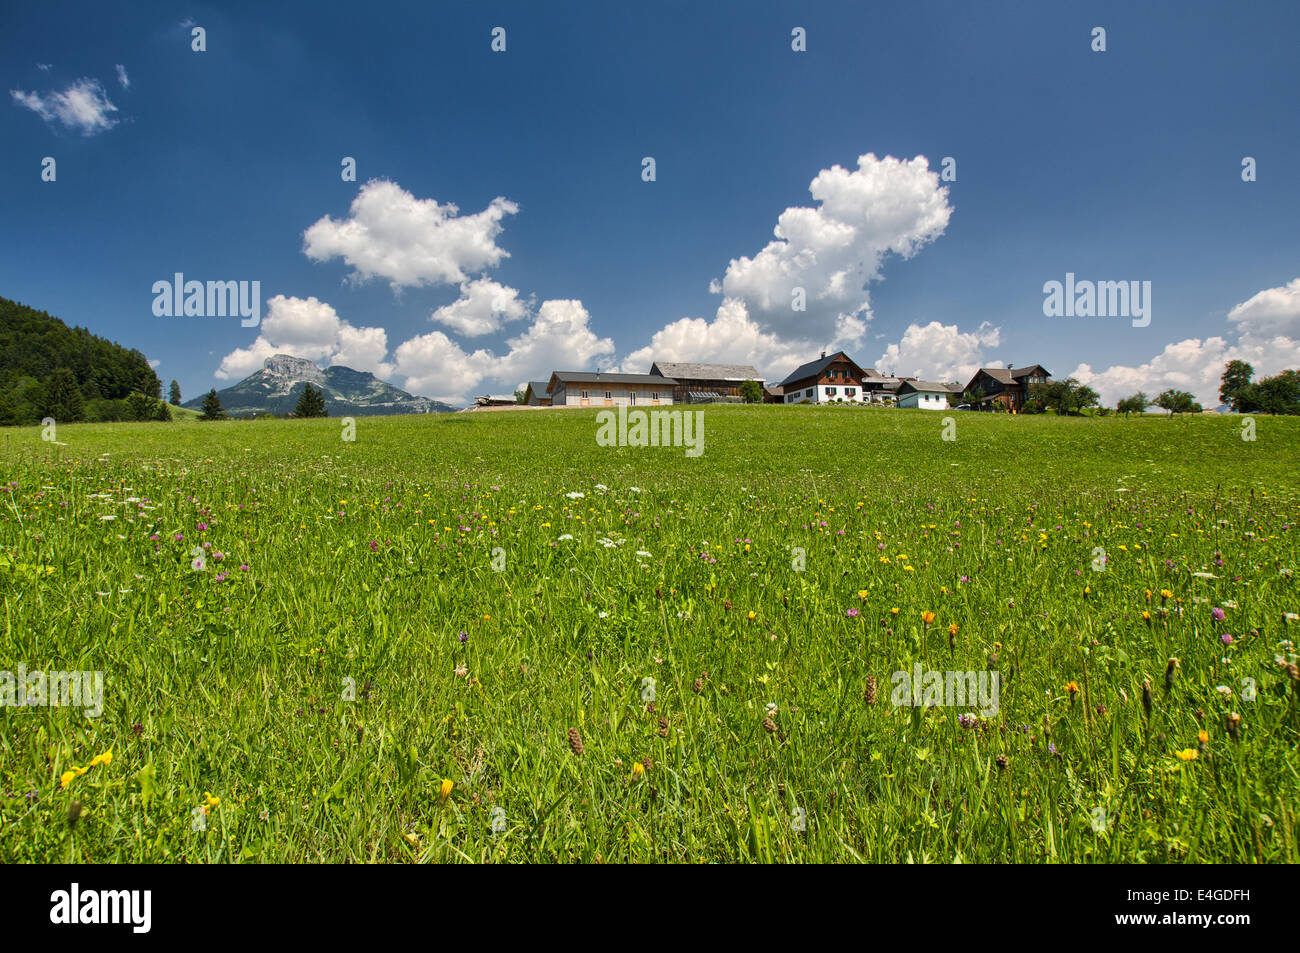 The houses in the meadow in high mountains panorama - Stock Image